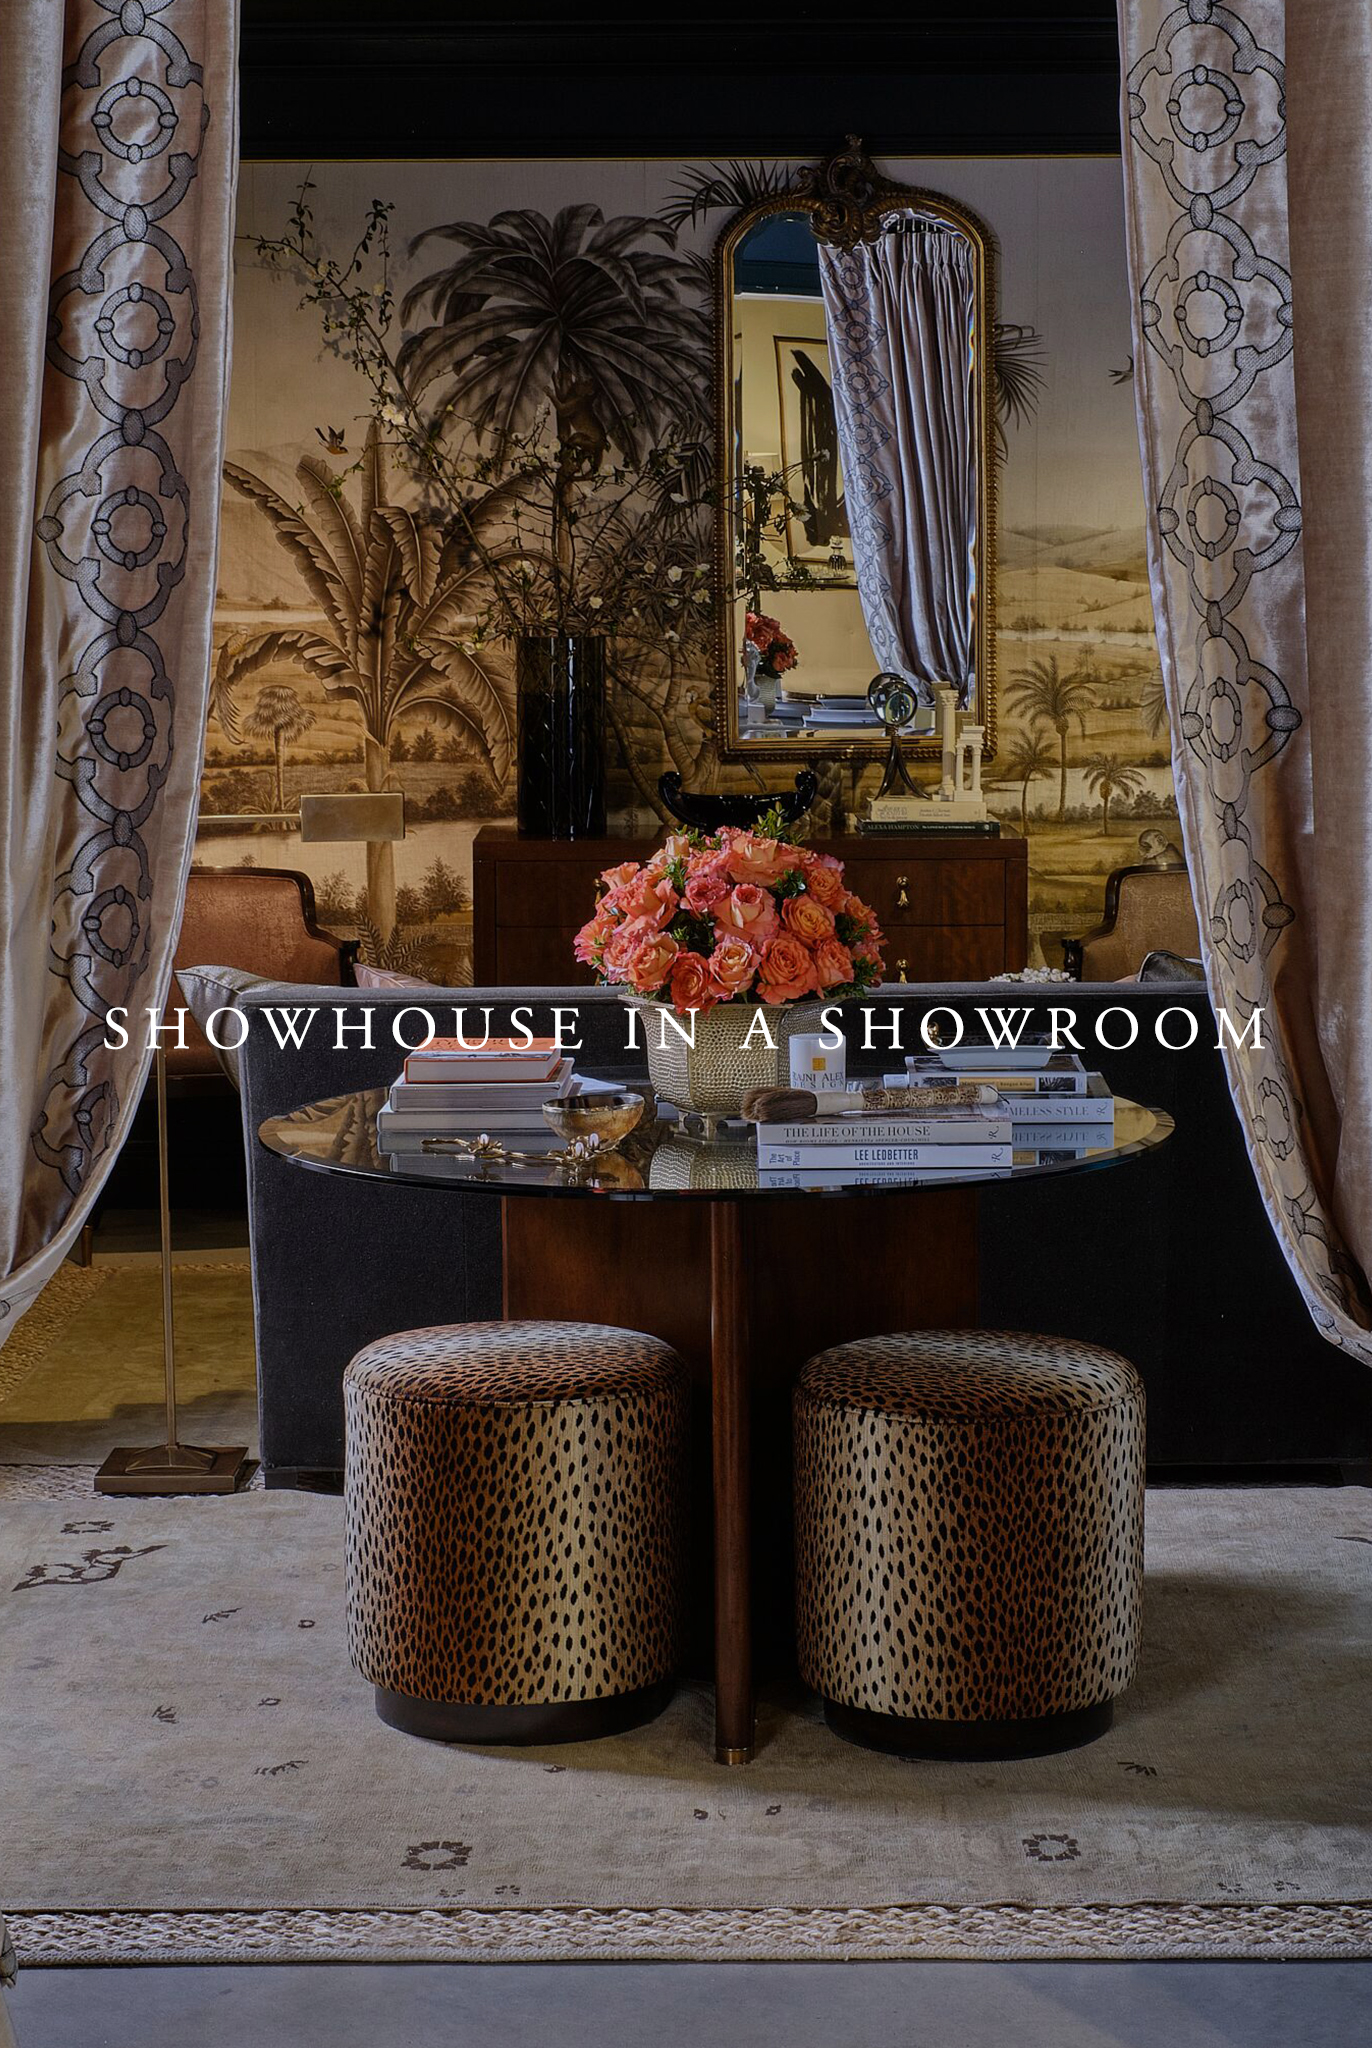 Showhouse in a Showroom.jpg